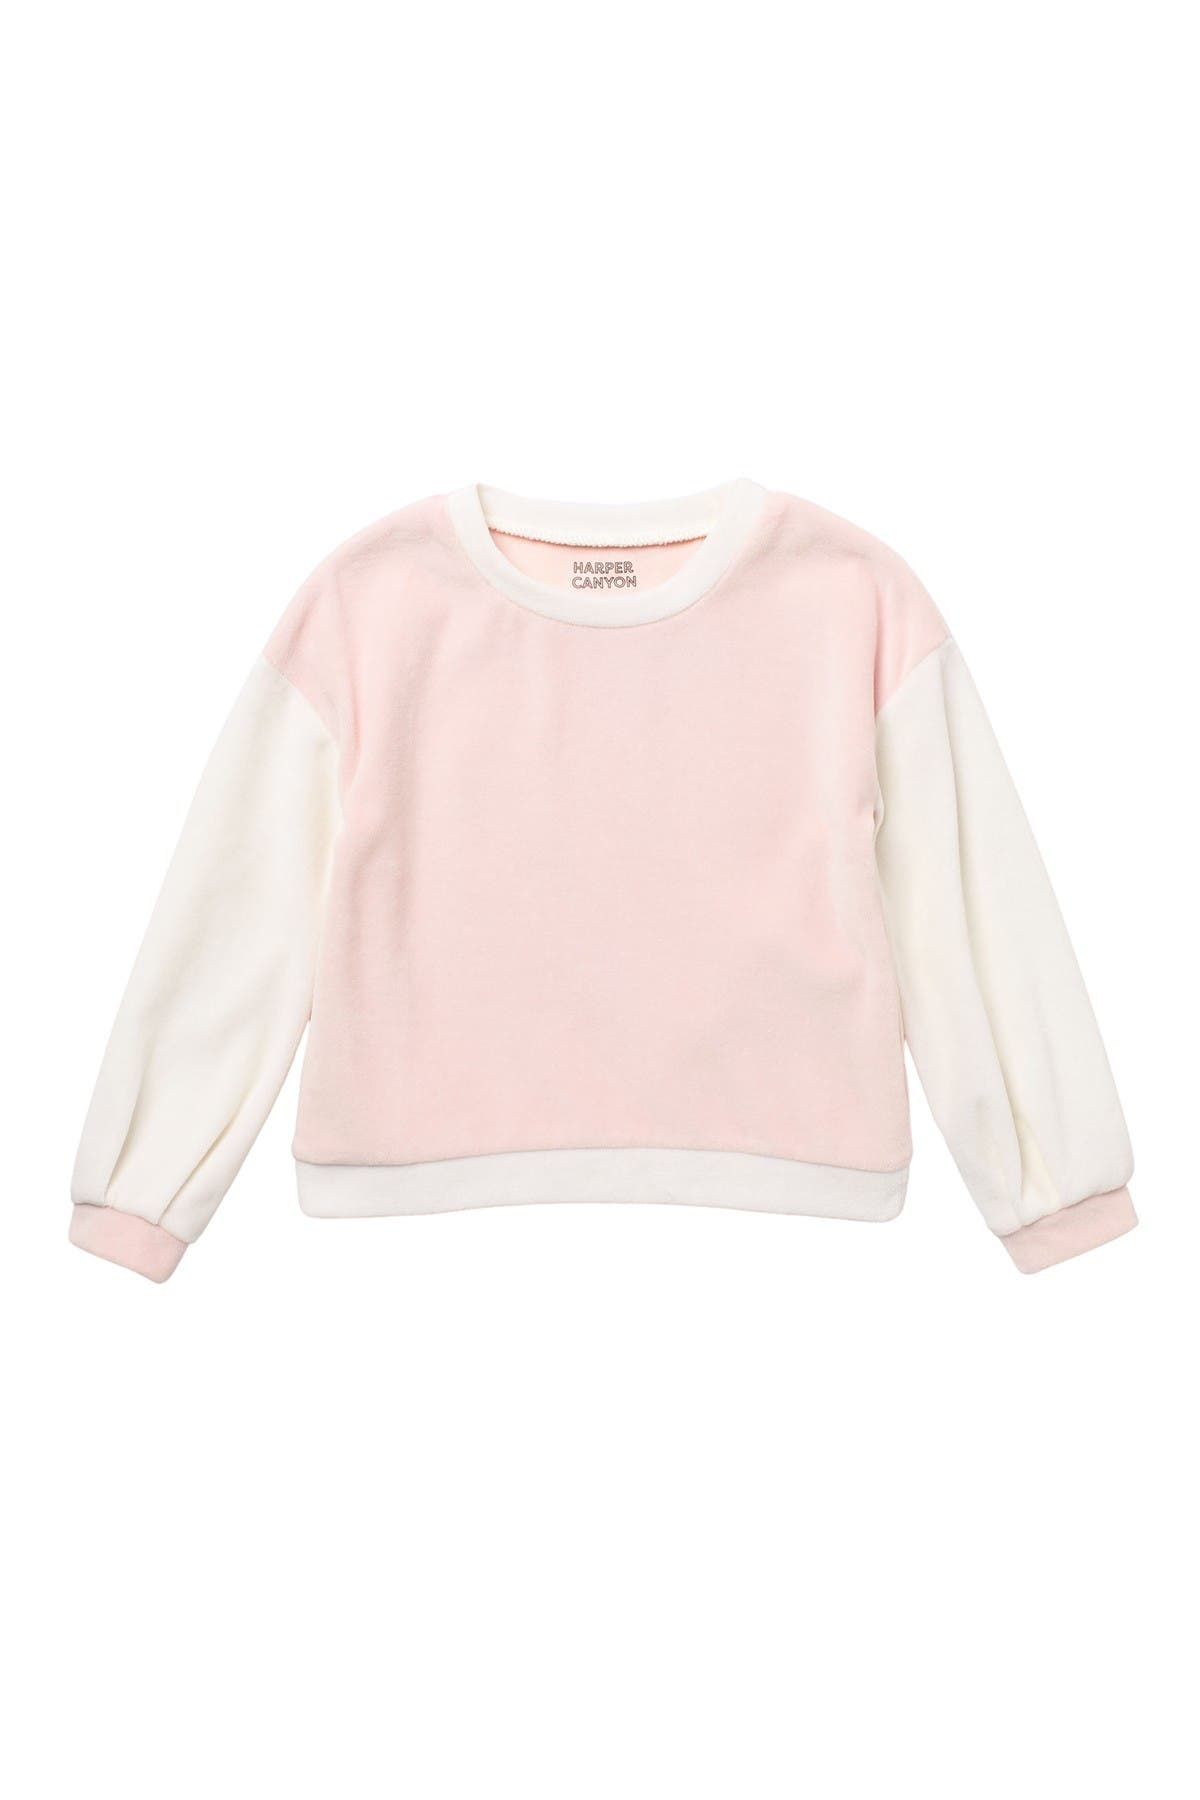 Image of Harper Canyon Sweet Cozy Colorblock Sweater